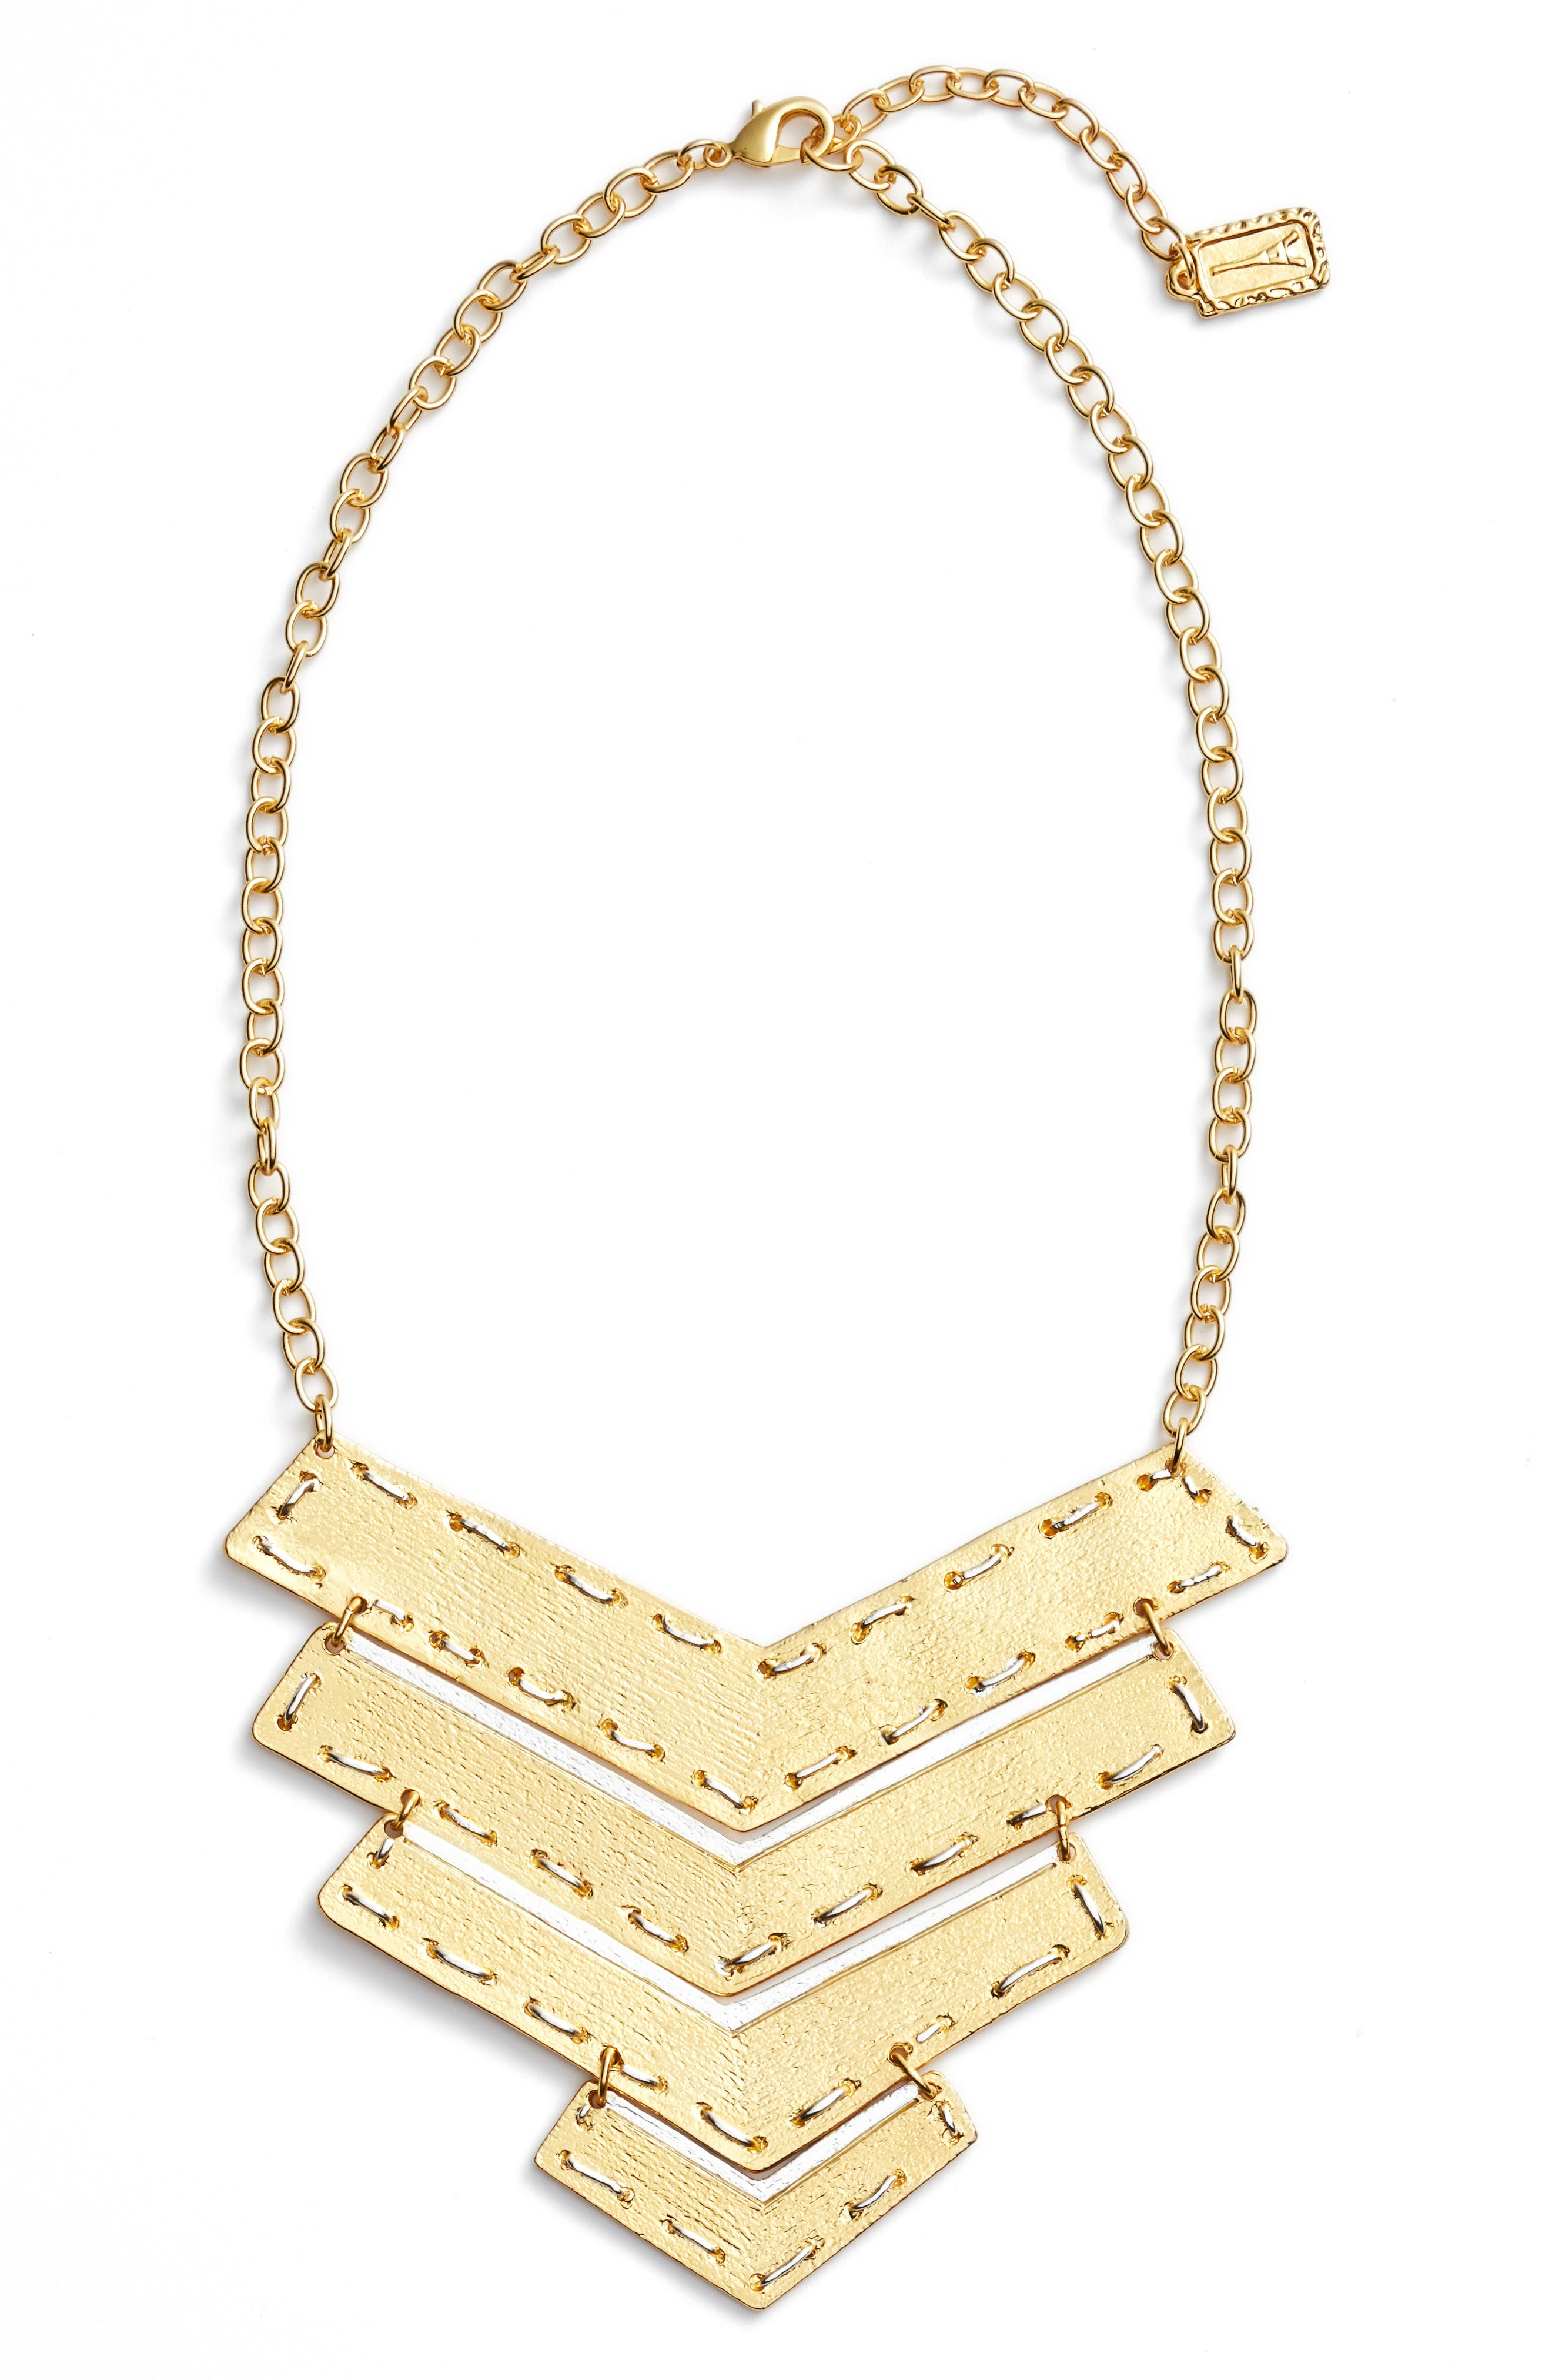 Karine Sultan Chevron Pendant Necklace